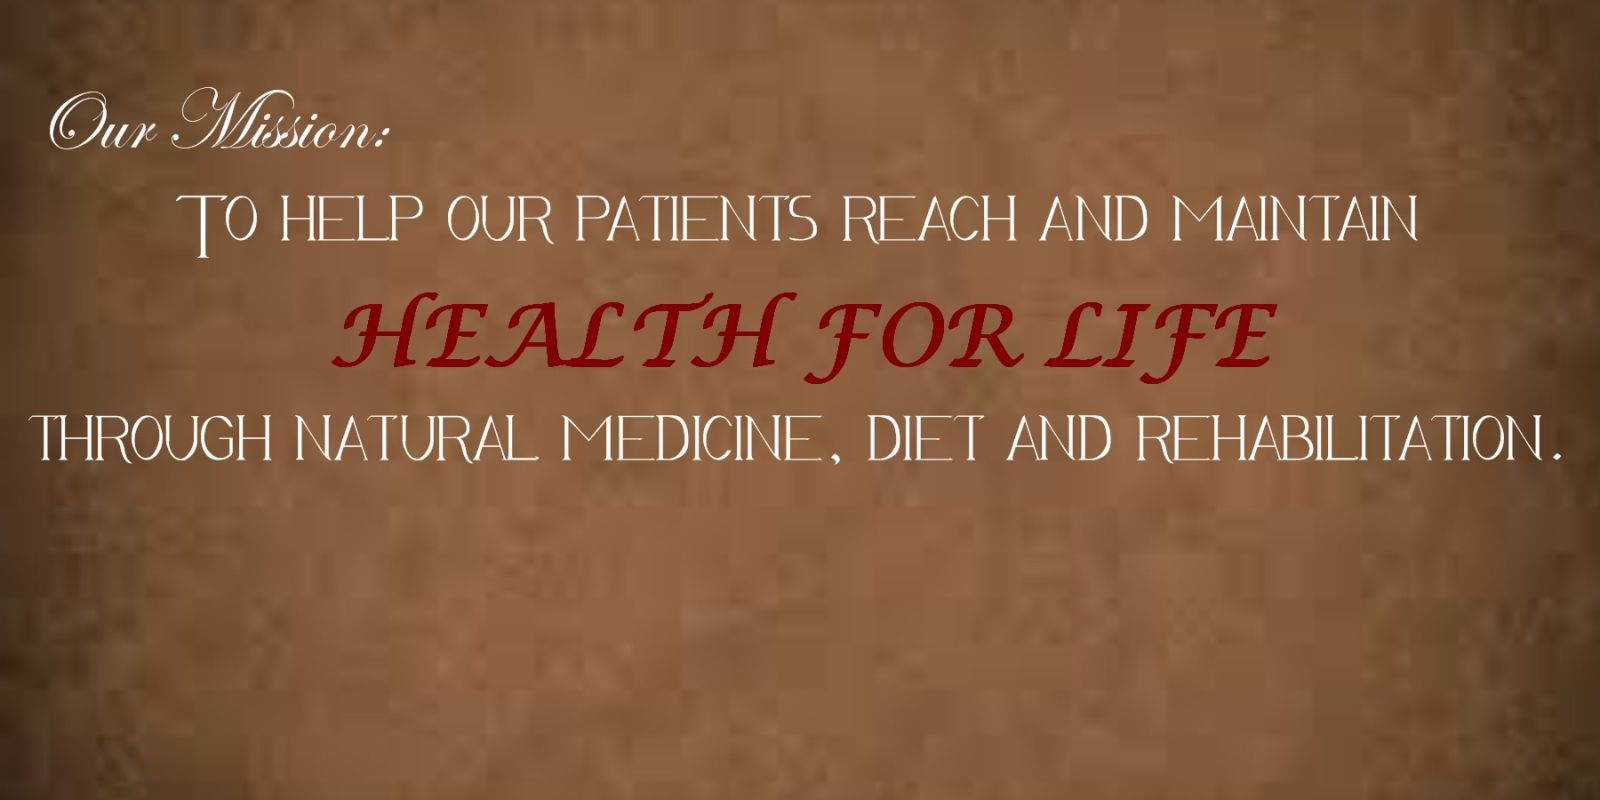 mission statement ogden ut chiropractor health for life spine our mission statement